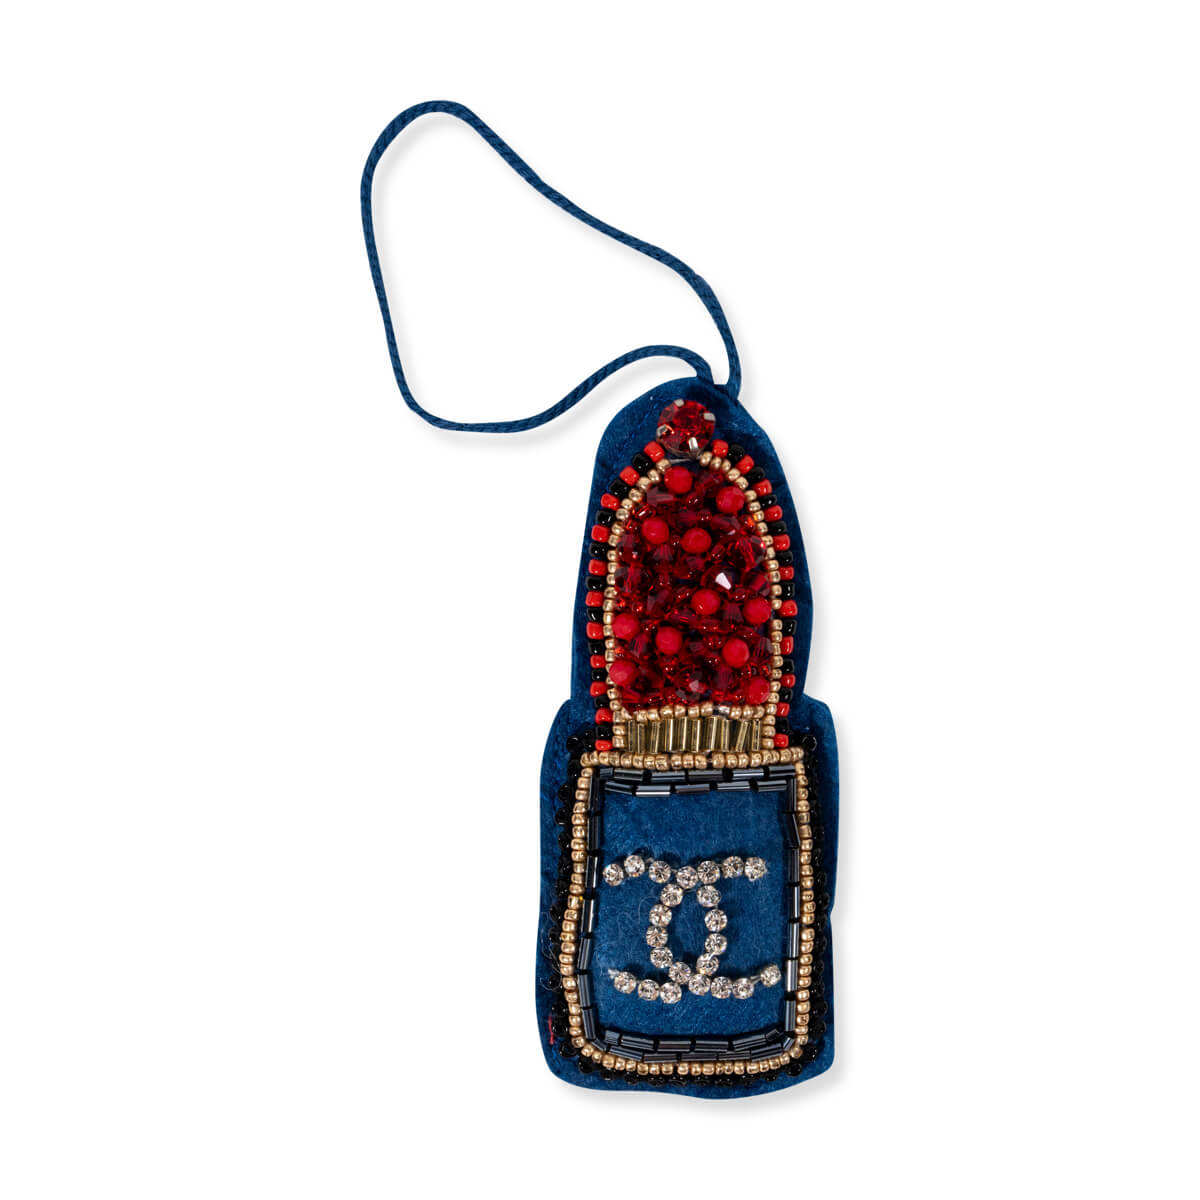 Furbish Studio - Beaded and Jeweled Lipstick Ornament